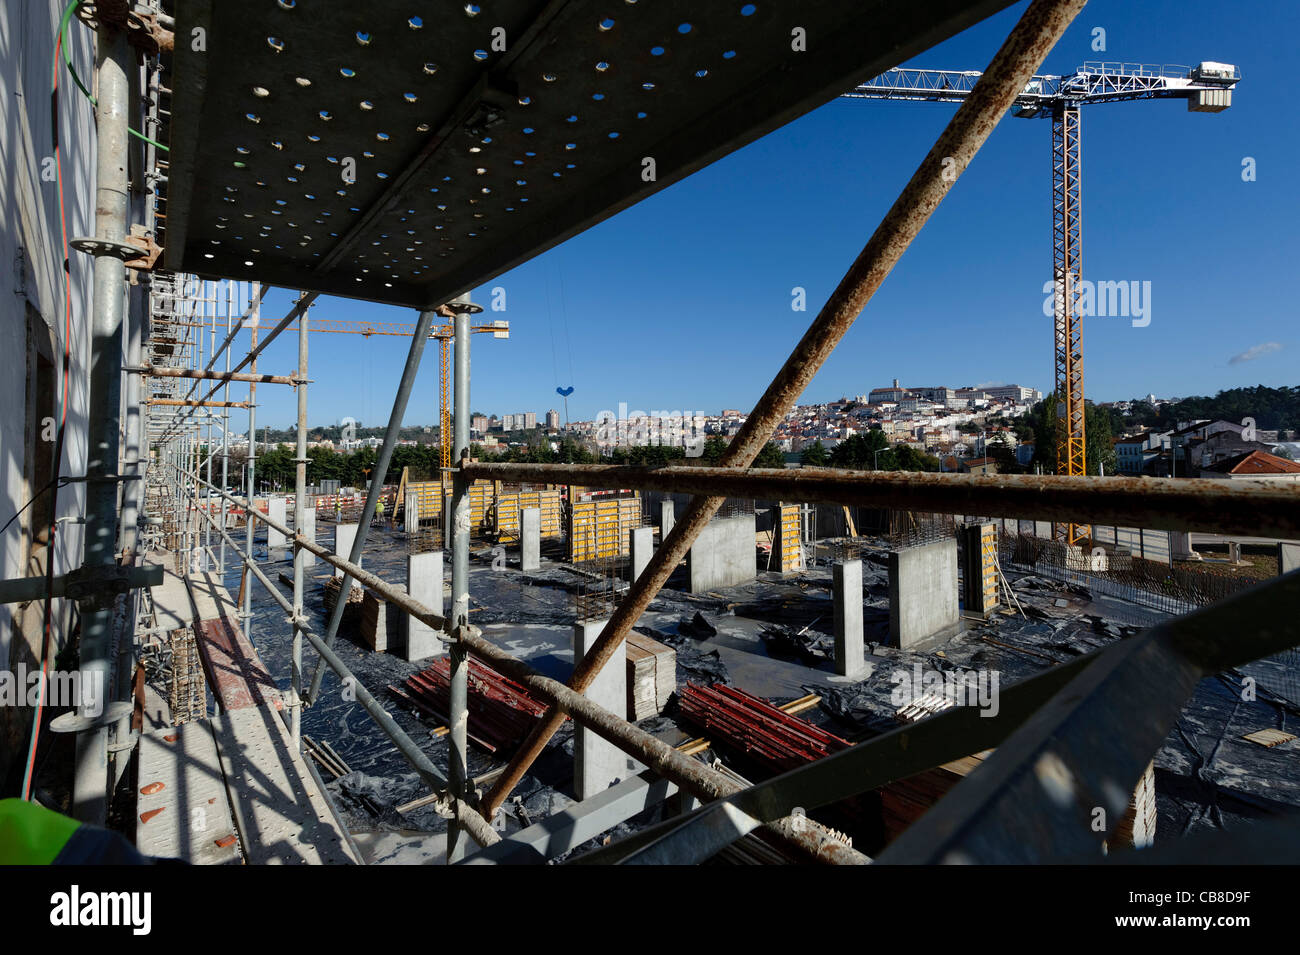 Construction site with scaffolding and cranes - Stock Image